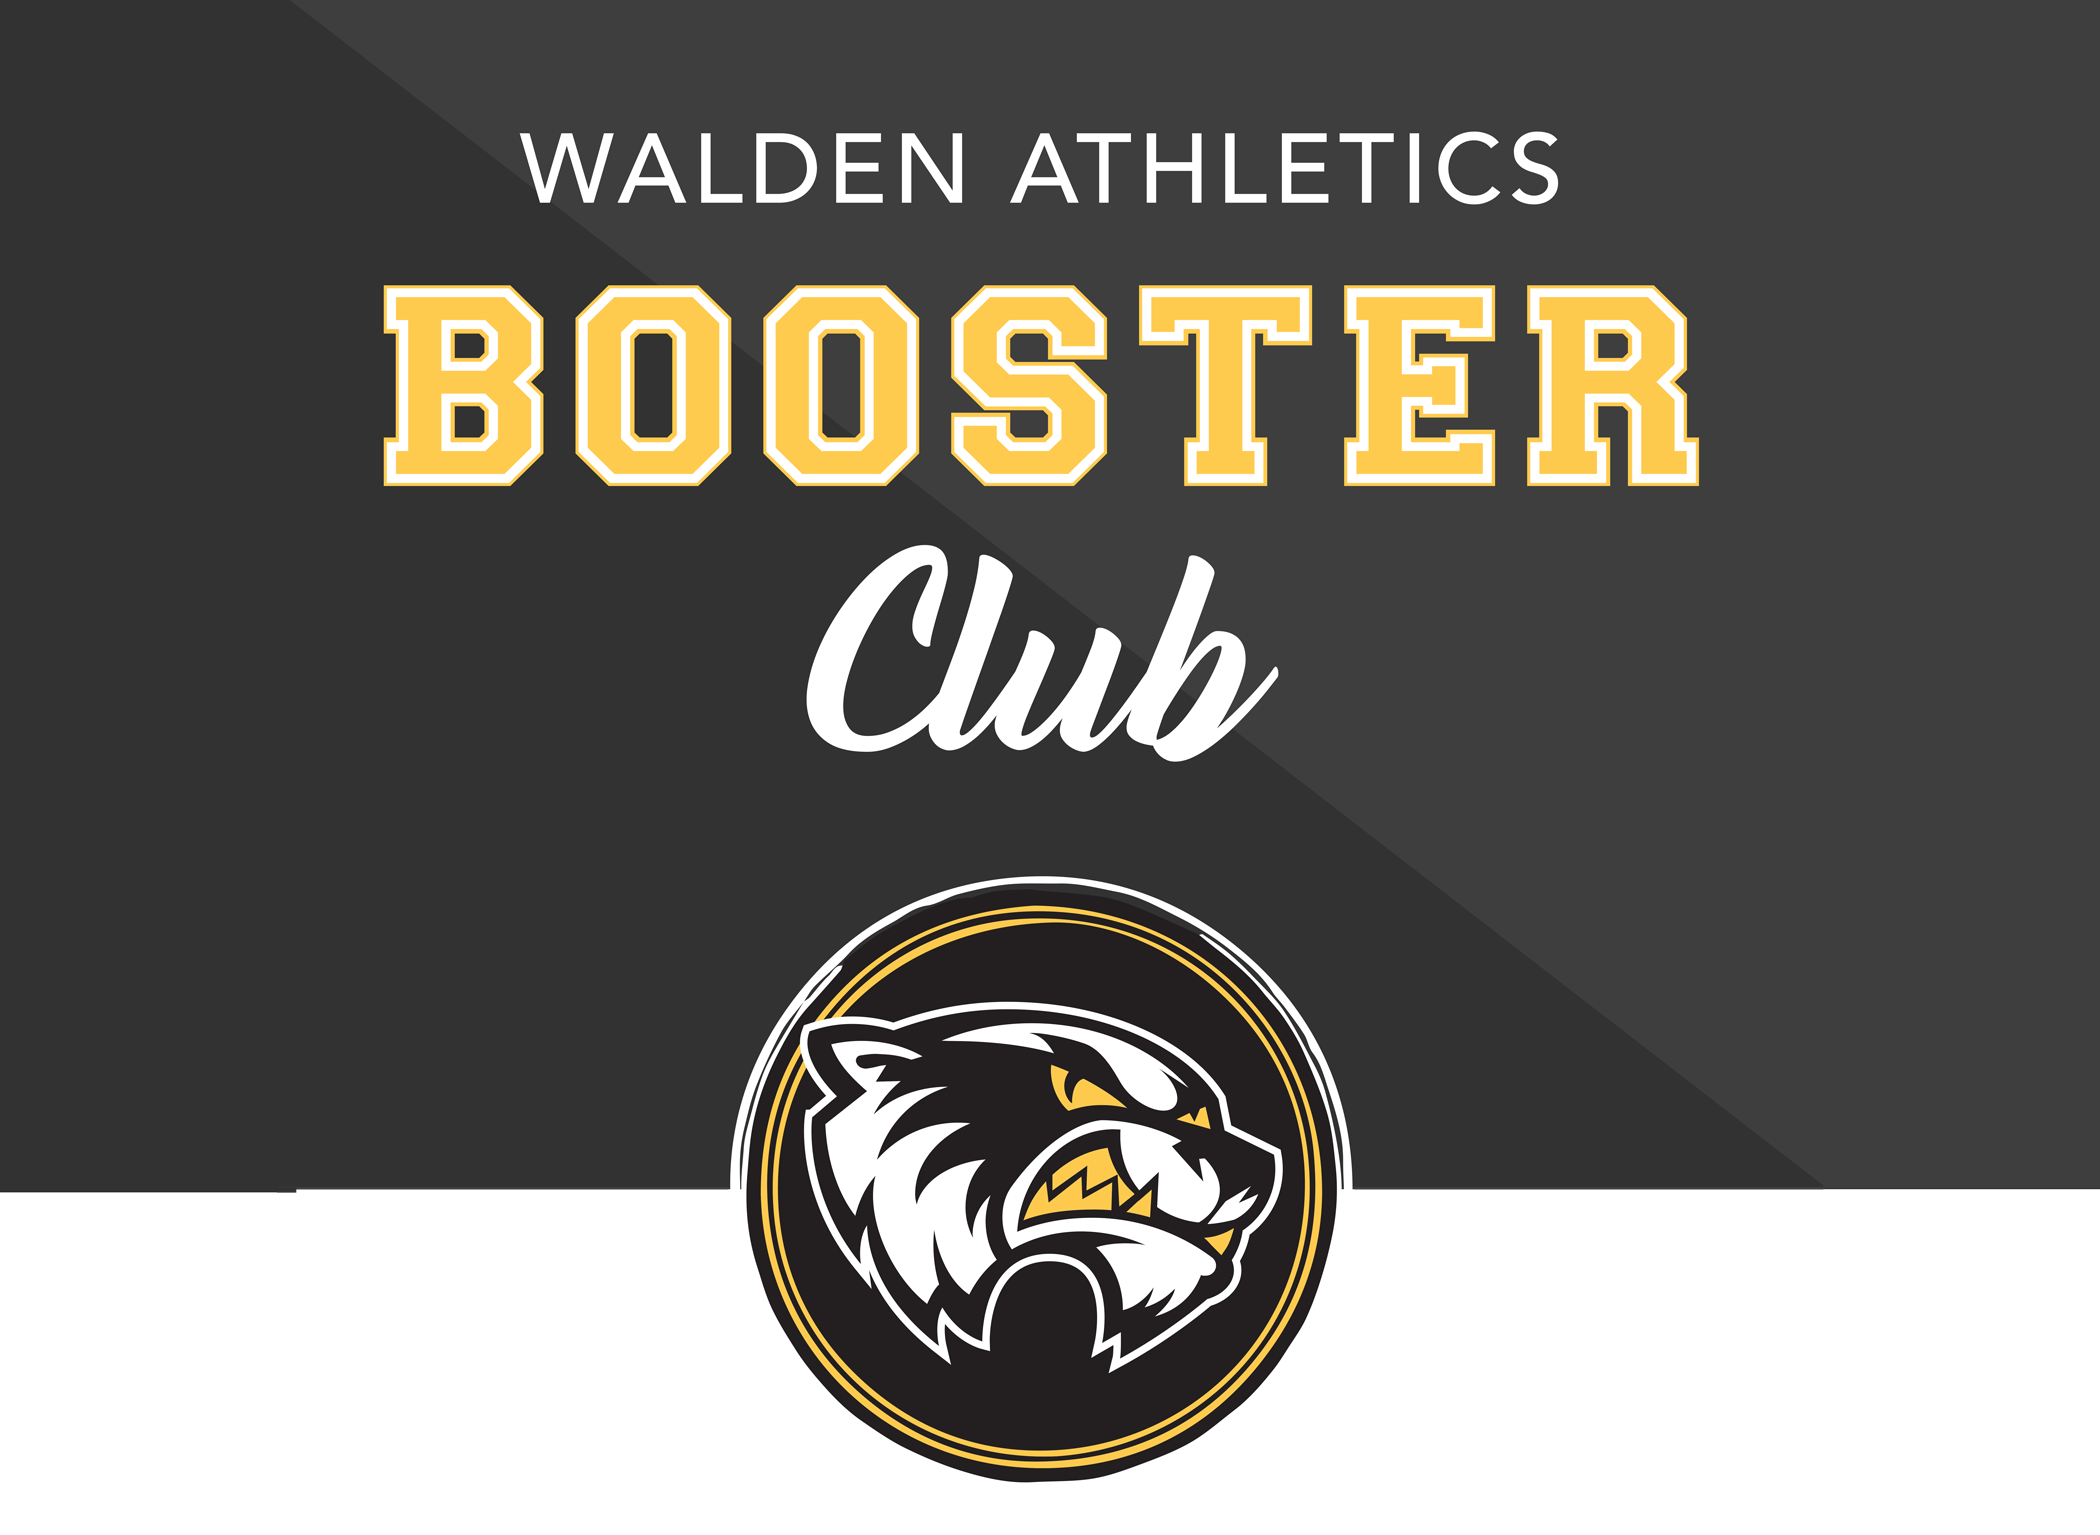 Support the Wolverines! - THE BOOSTER CLUB is a non-profit volunteer organization comprised of parents, staff, and other interested parties. Our mission, through fundraising, is to enrich and promote the athletic programs at Walden School.In addition, we strive to promote good sportsmanship, high ideals of character, and academic achievement in all our team players.